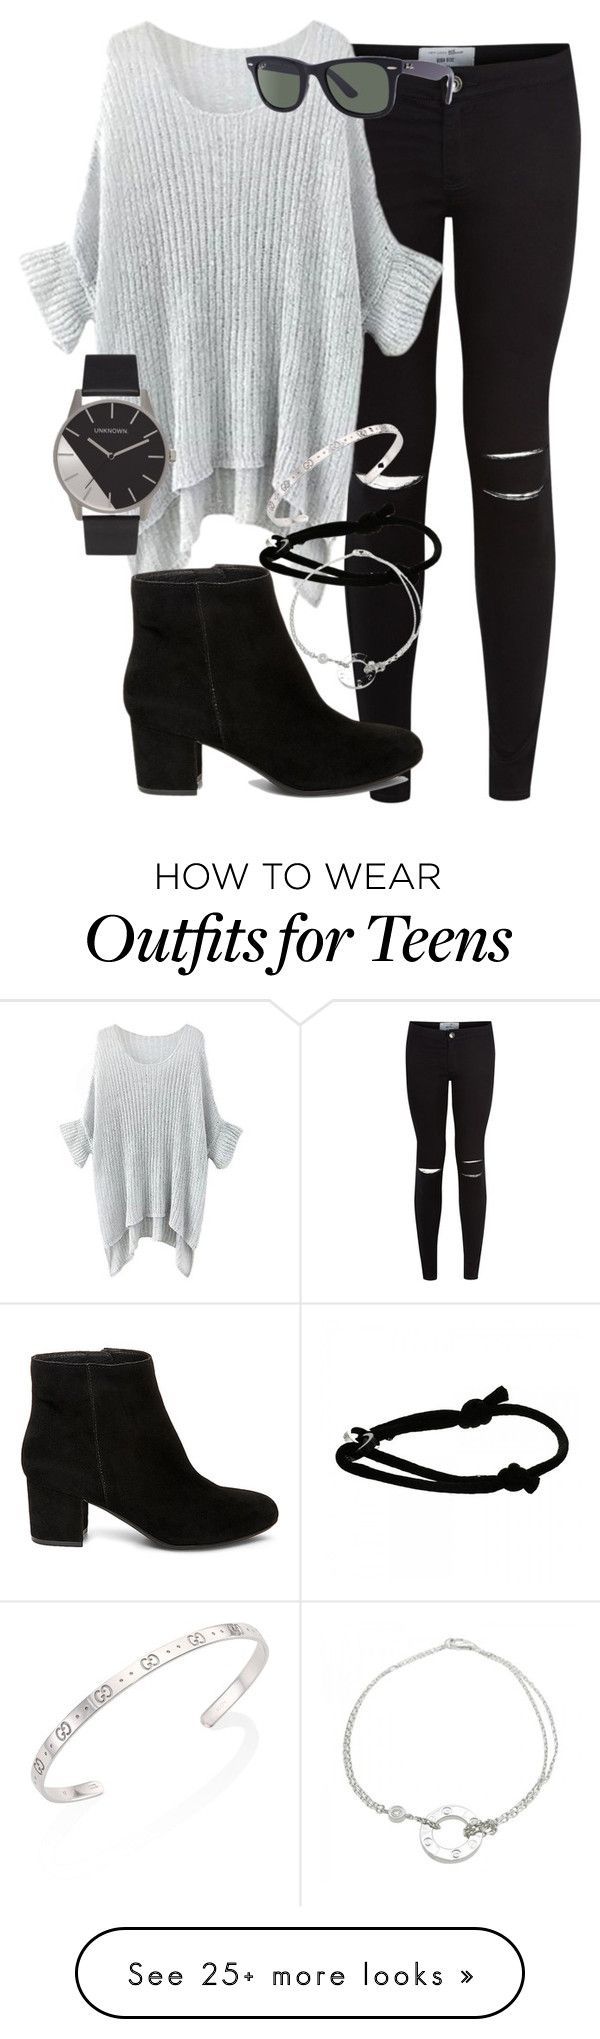 """Here's another tag( do it if you want )"" by star-lightt on Polyvore featuring New Look, Ray-Ban, Steve Madden, Cartier and Gucci"